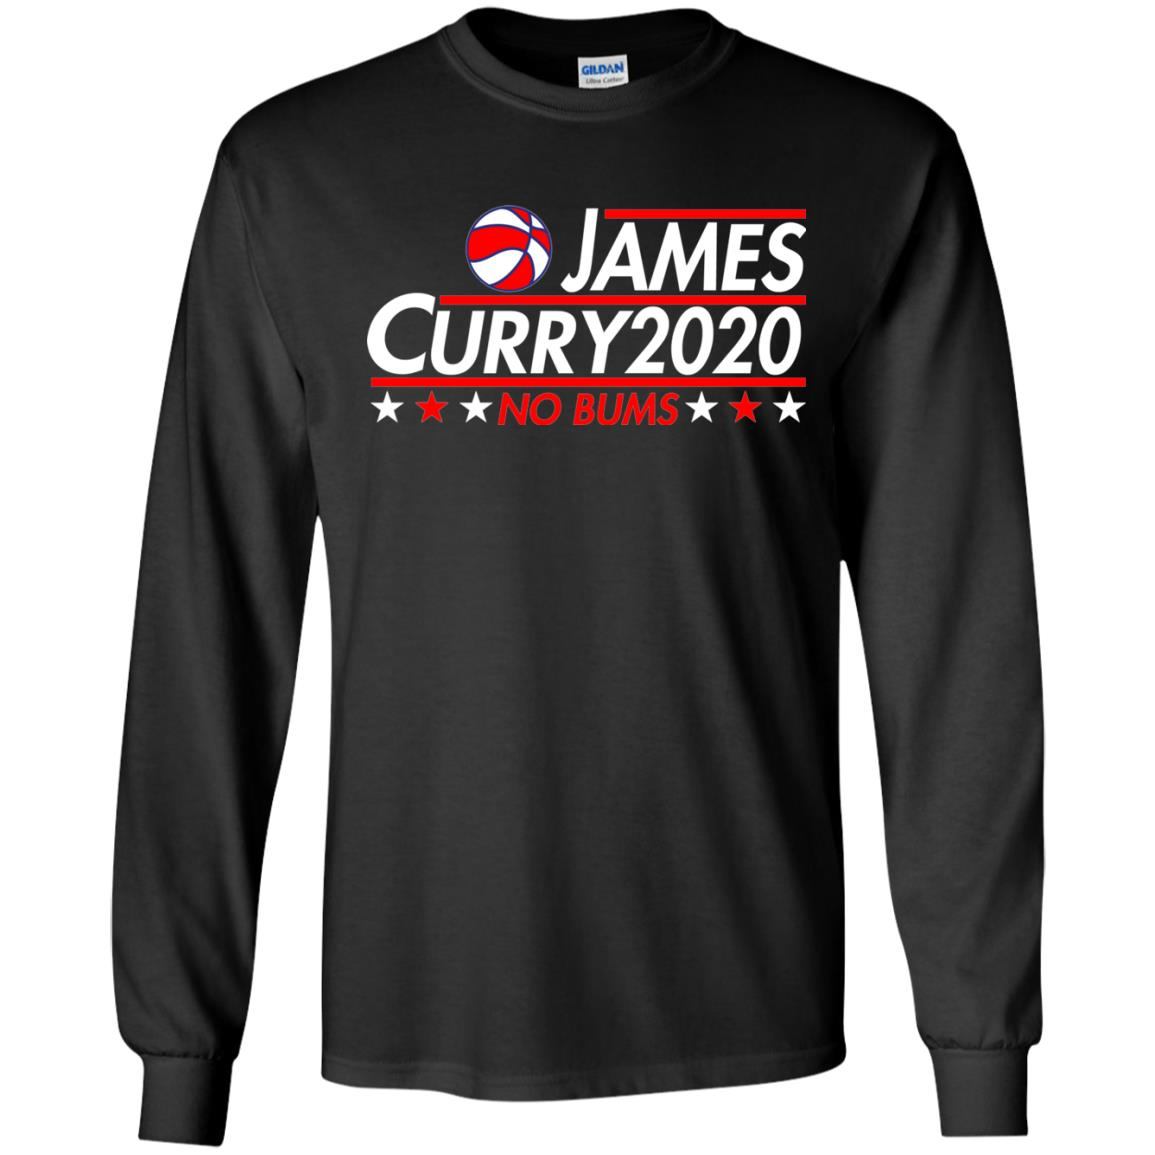 image 2168 - James Curry 2020 shirt No Bums: James & Curry for President